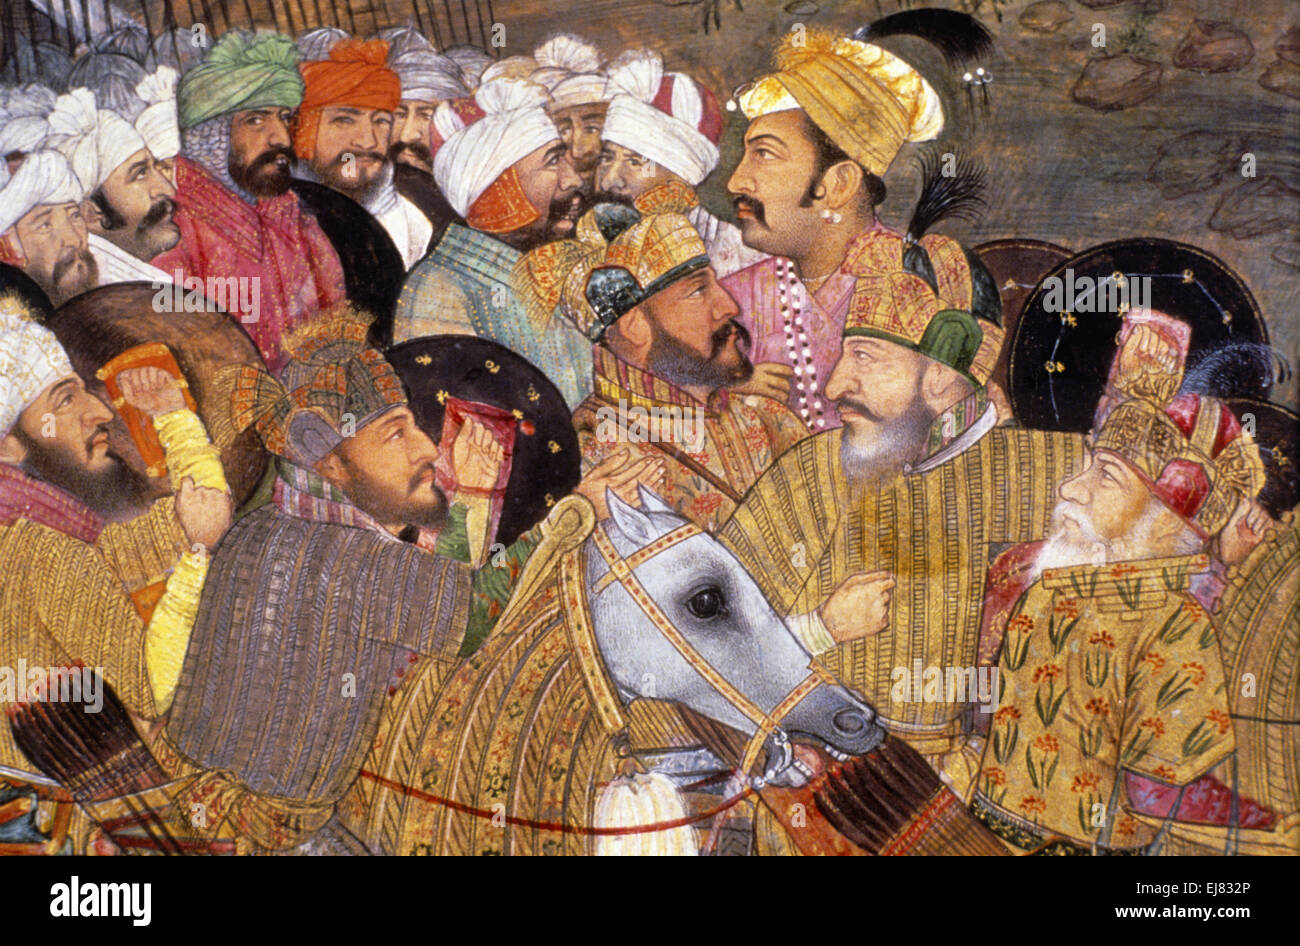 details of an incident in the seige of kandahar mughal miniature